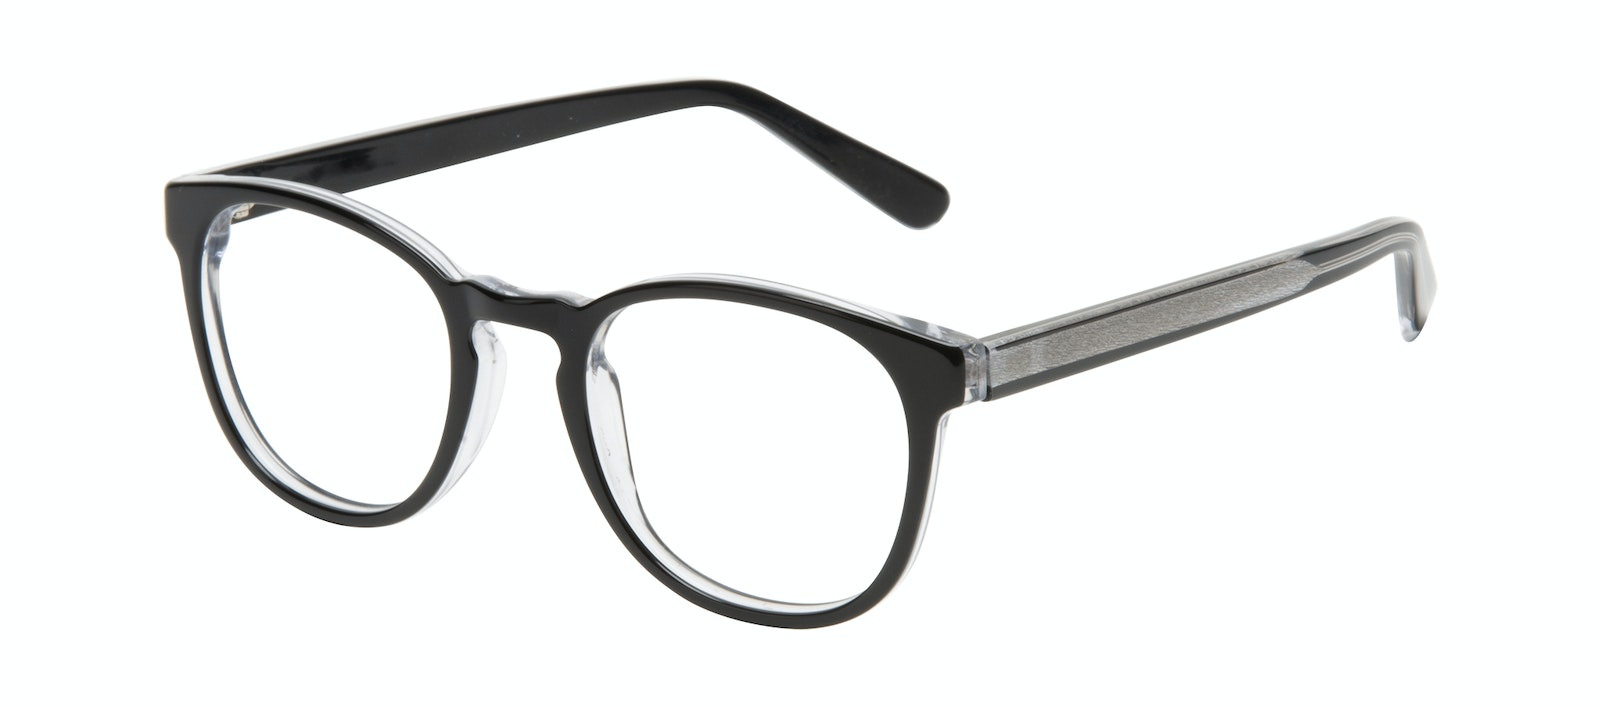 Affordable Fashion Glasses Round Eyeglasses Men Boreal Black Ice Tilt